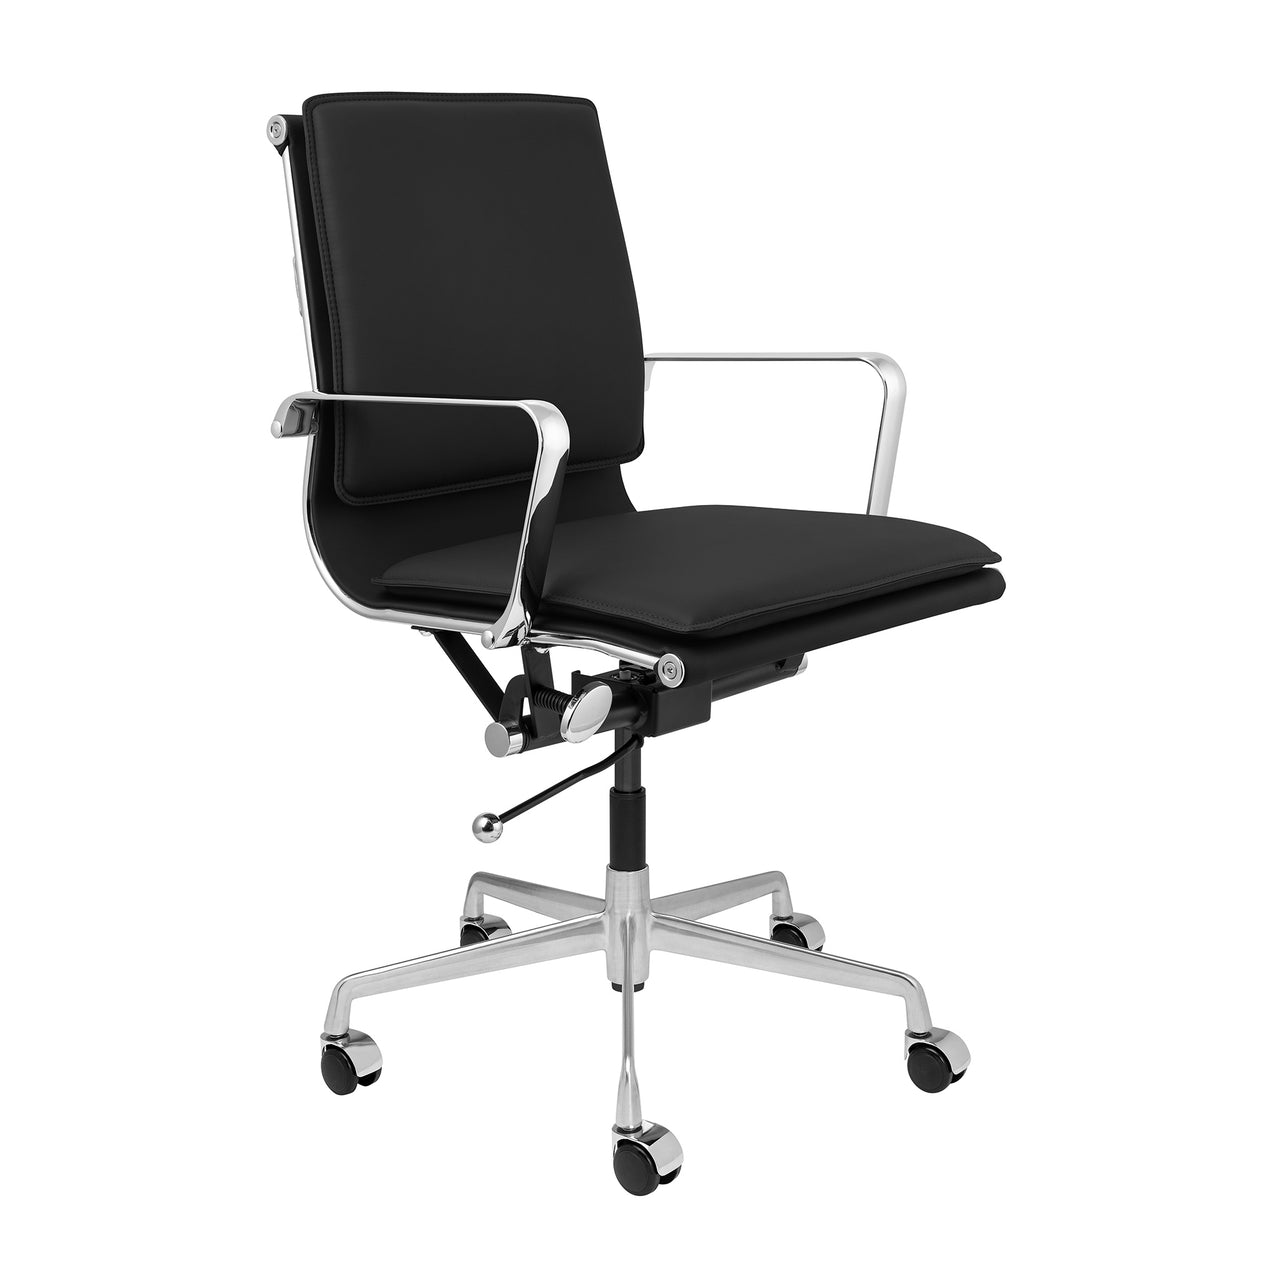 Lexi Soft Pad Office Chair (Black)